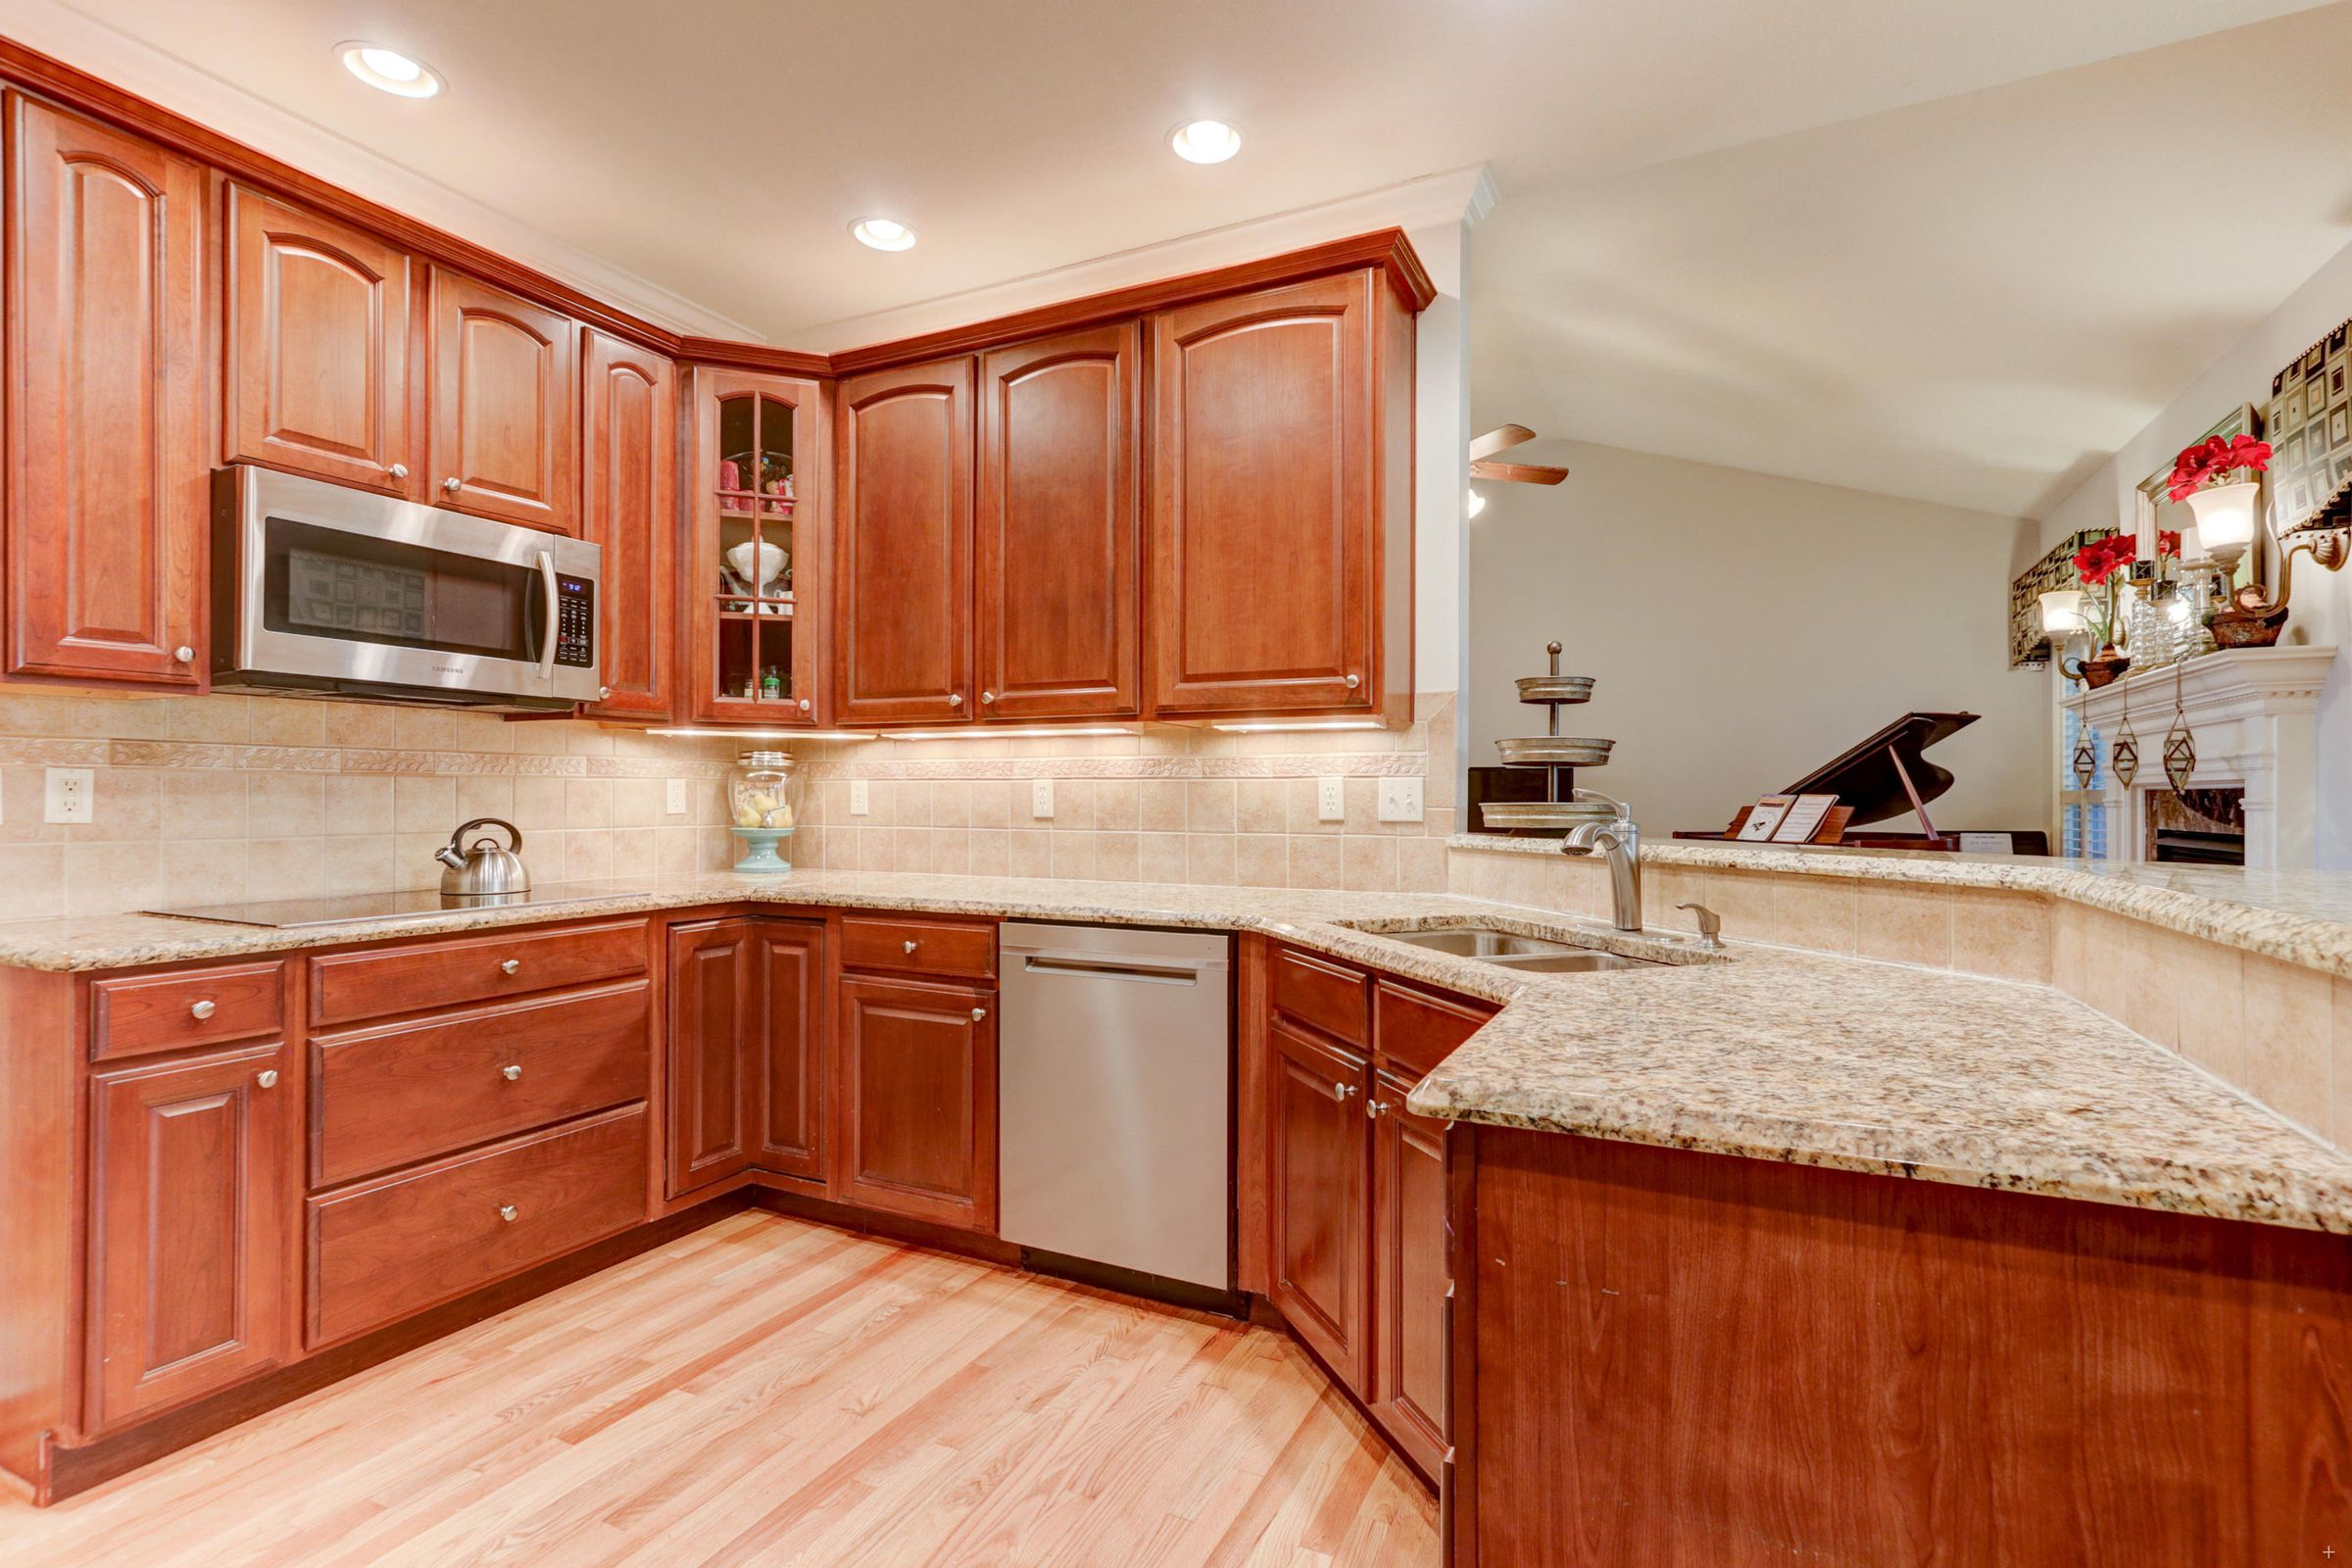 Updated Stainless appliances